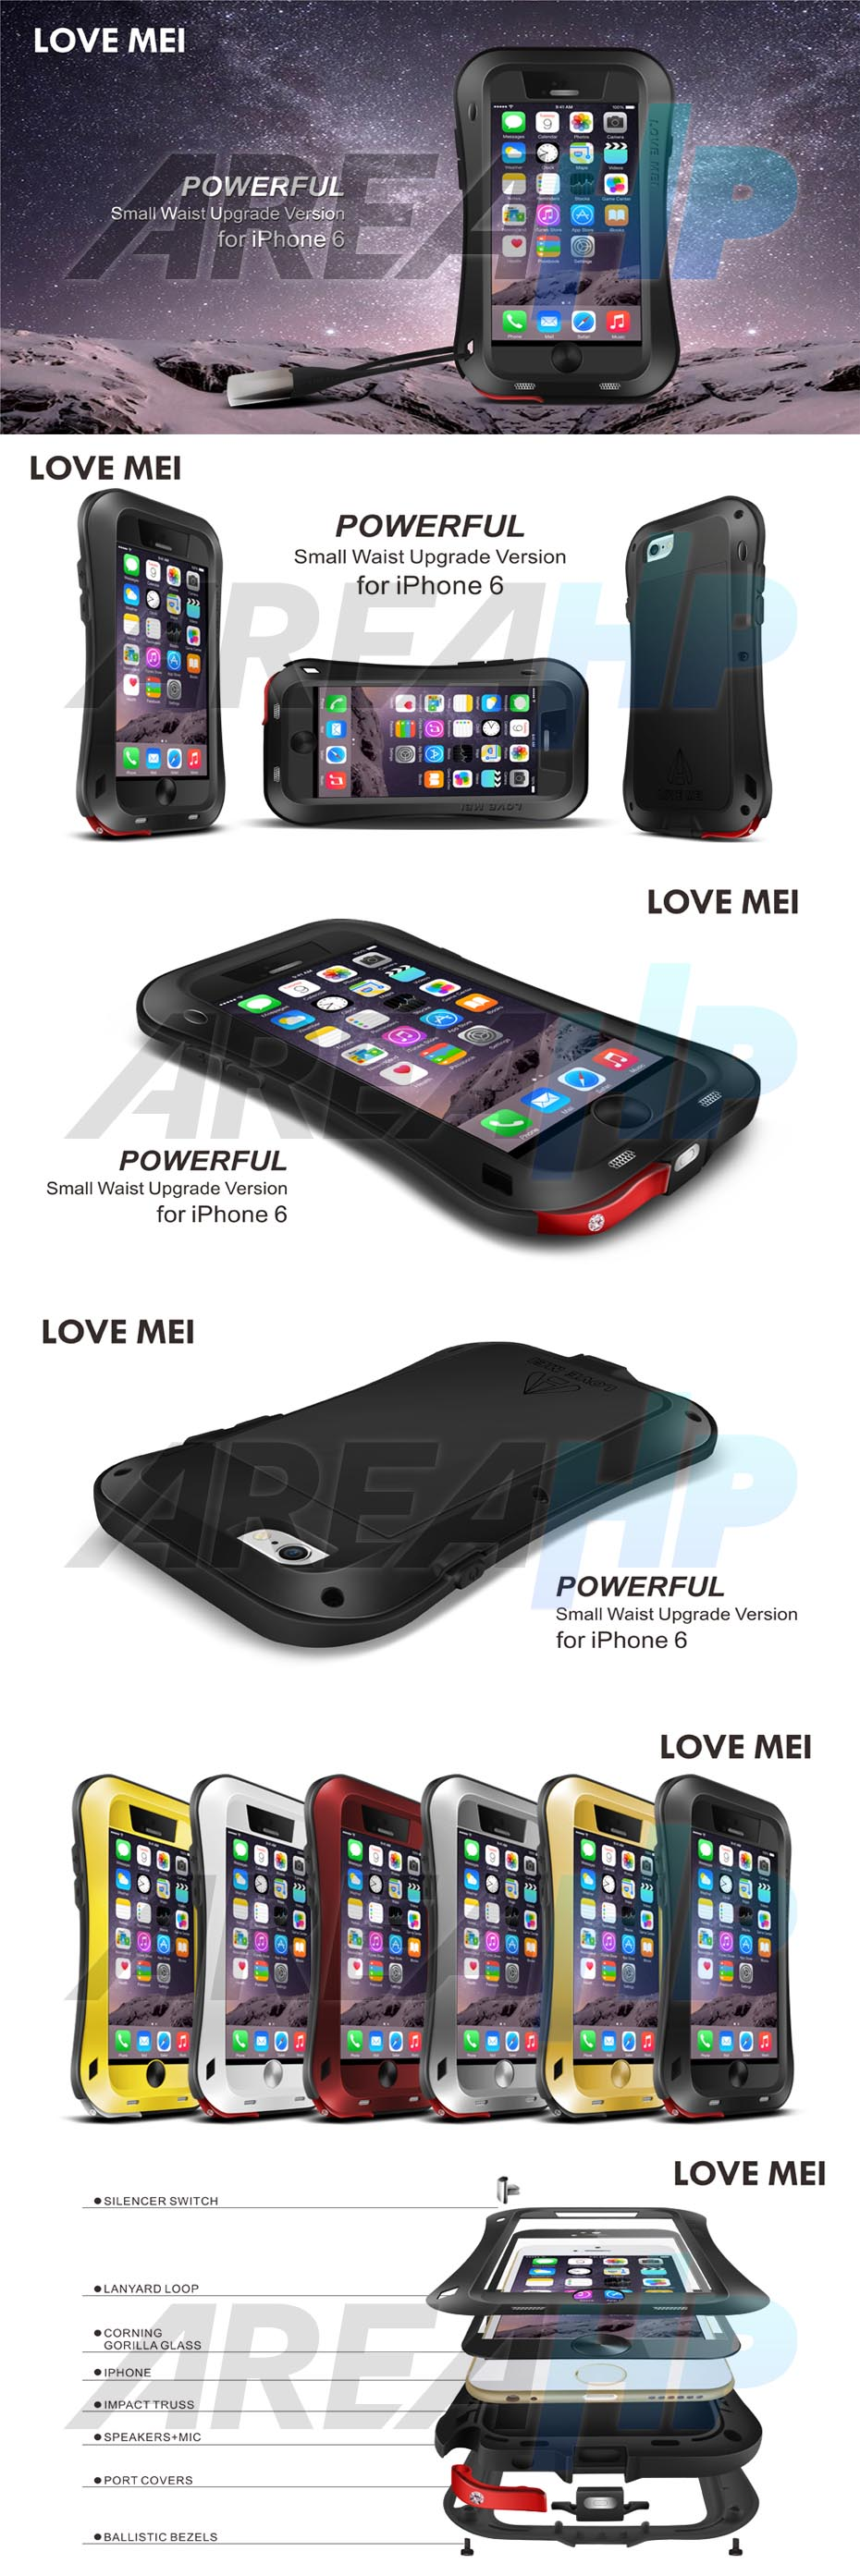 Love Mei Powerful Small Waist Upgrade Version for iPhone 6 Overview